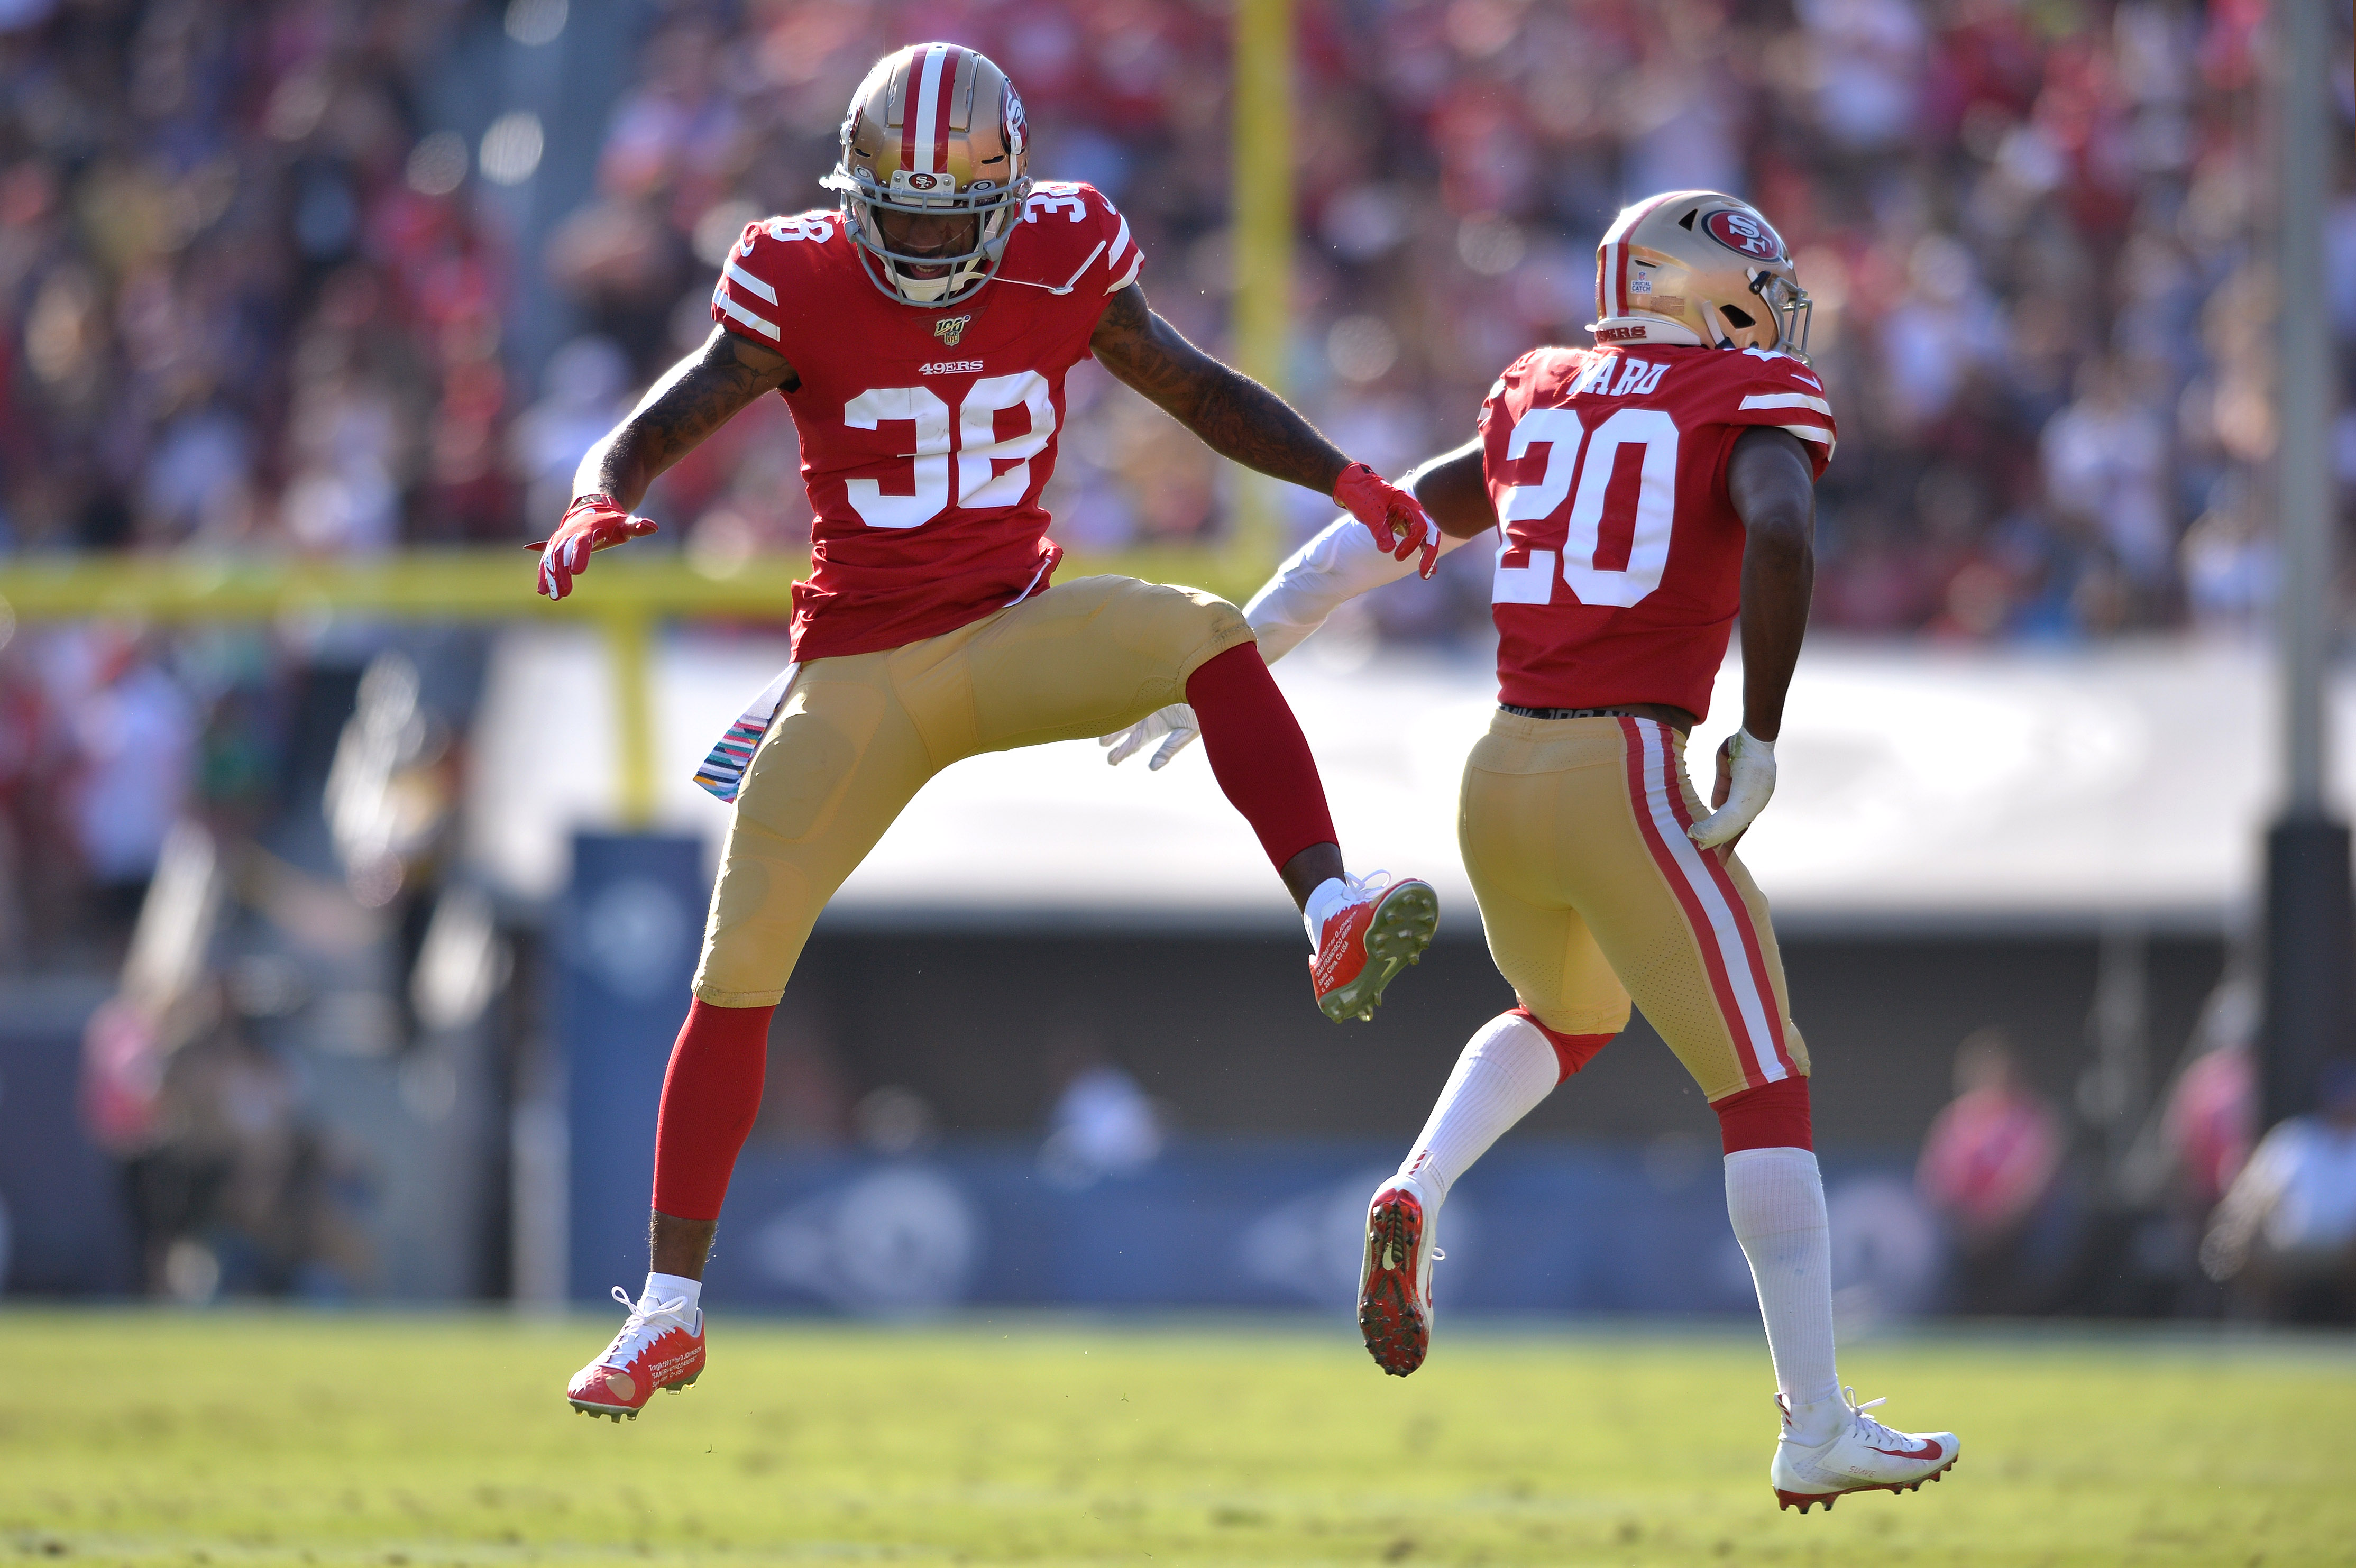 Enough excuses! The San Francisco 49ers are the real deal